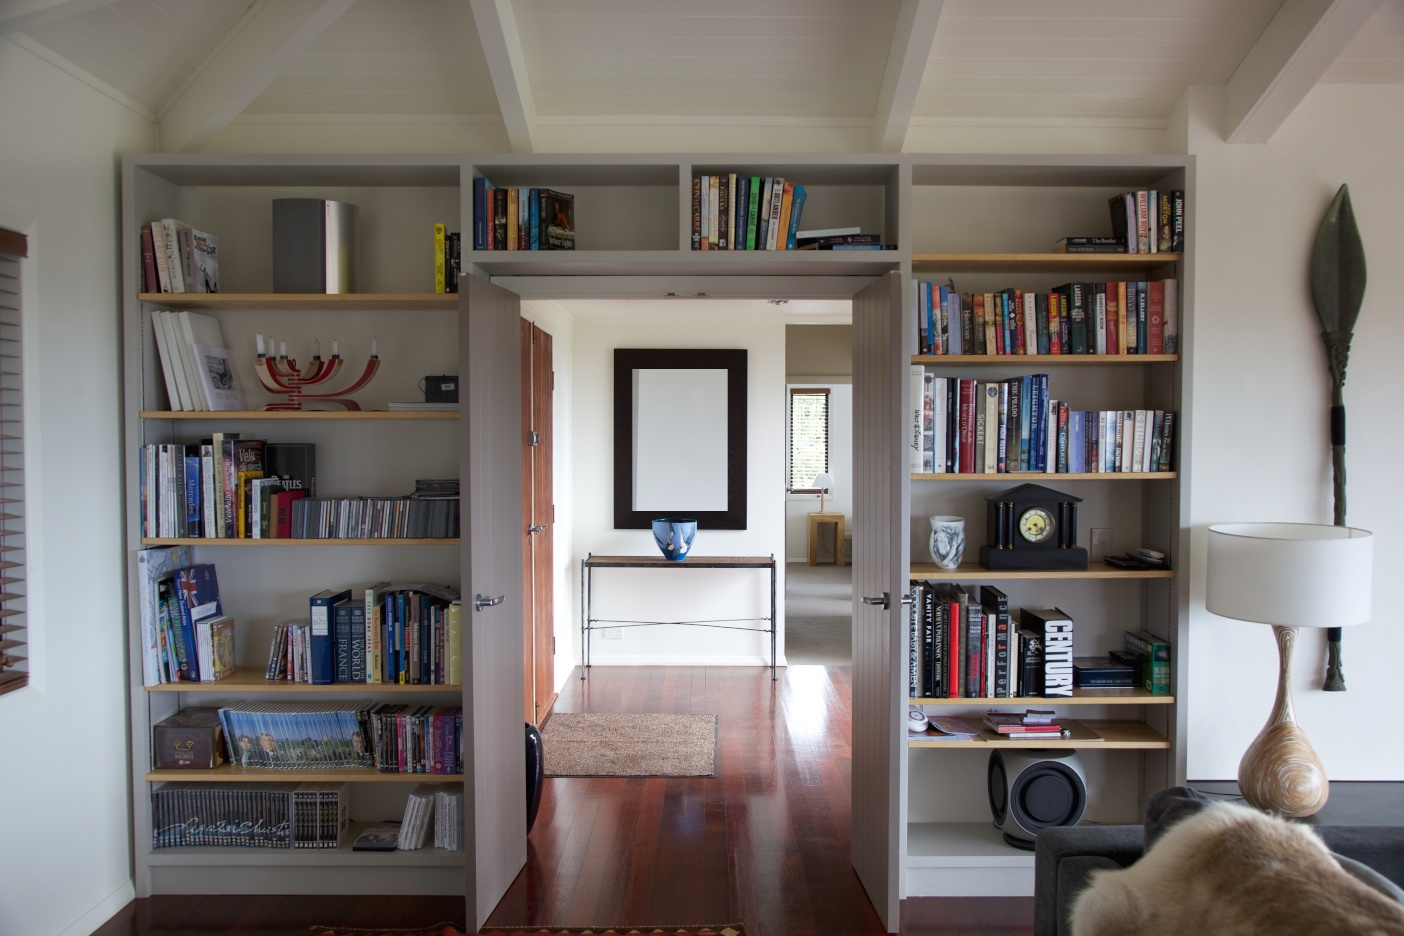 NZ book shelves